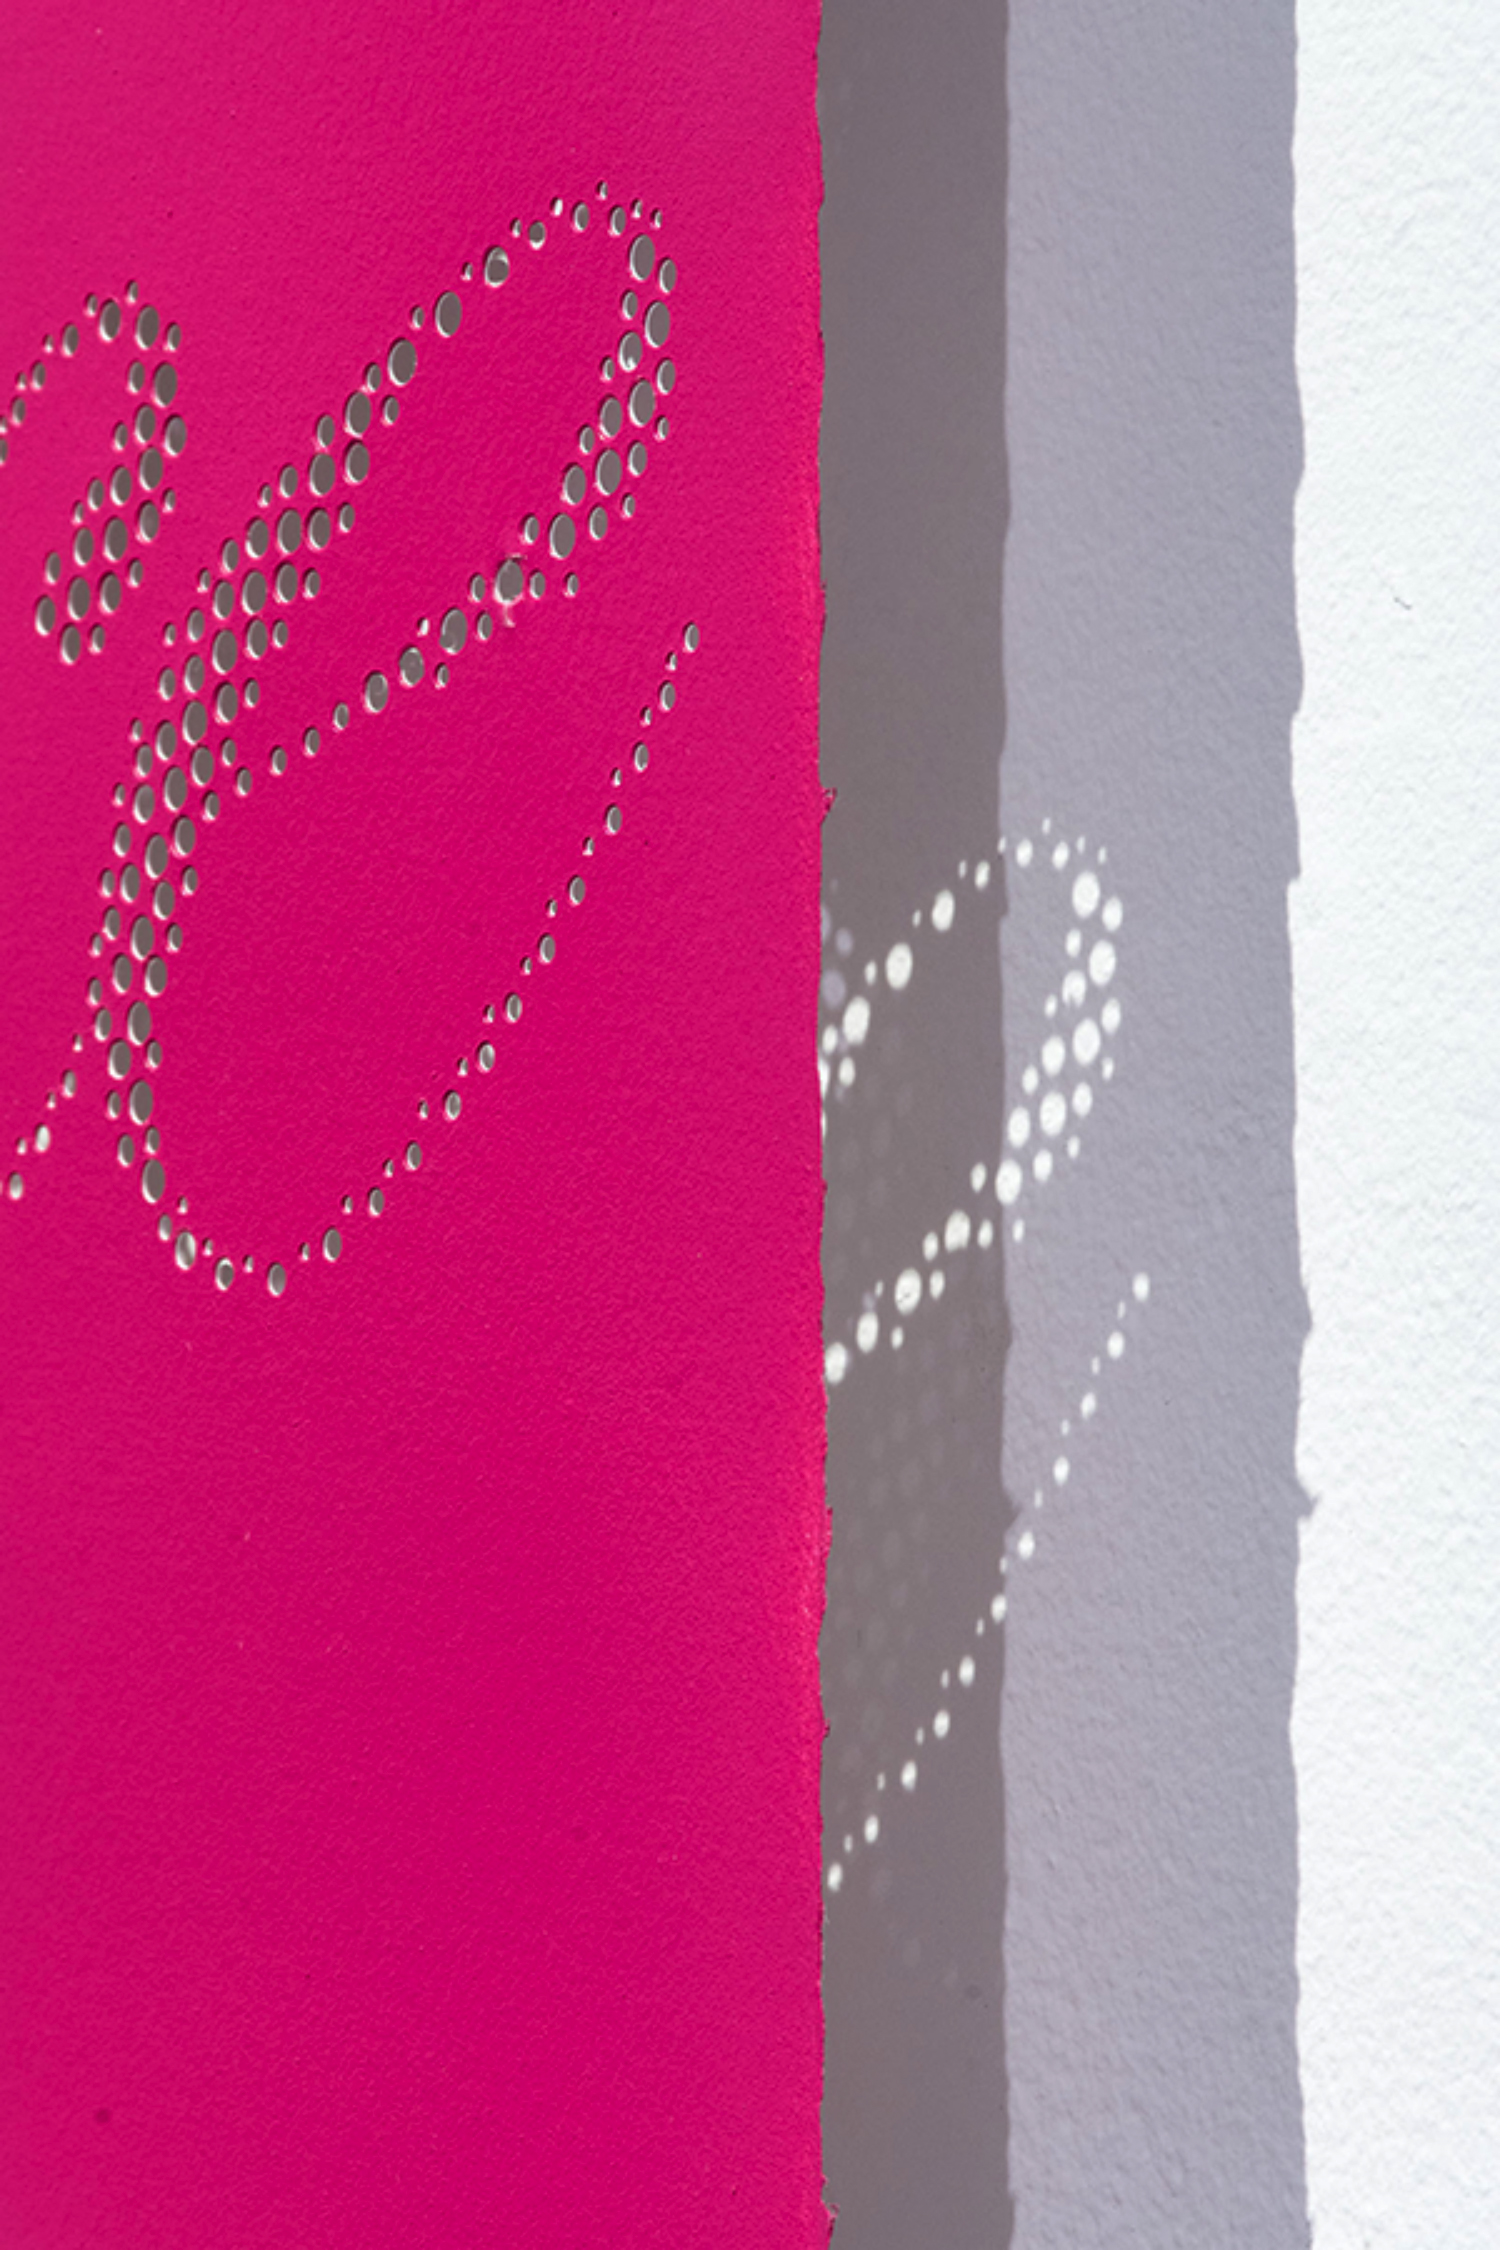 """detail, Big Mistake , hand hole-punched paper, 30"""" x 44"""", 2013"""